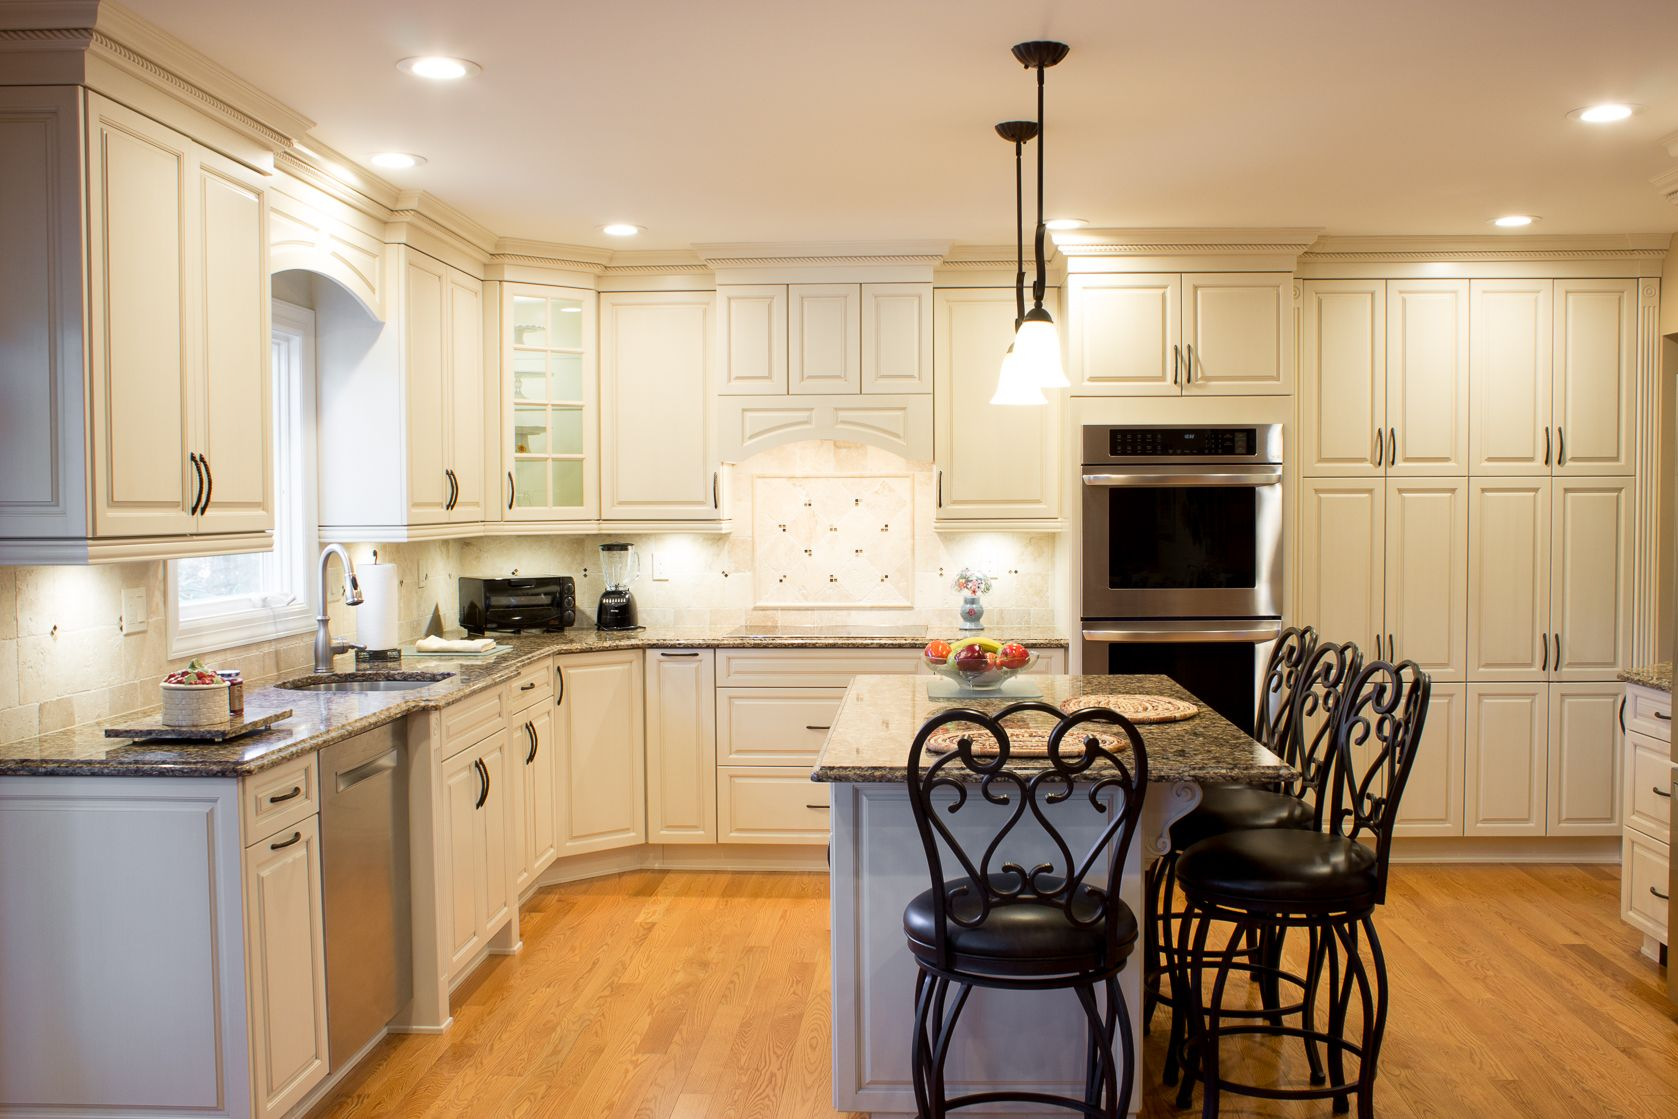 Kitchen Renovation Kitchen Craft Euro Cabinets Maple Marquis Door Drawer Style Finished In Palomino Cambria Can Kitchen Remodel Free Kitchen Design Kitchen